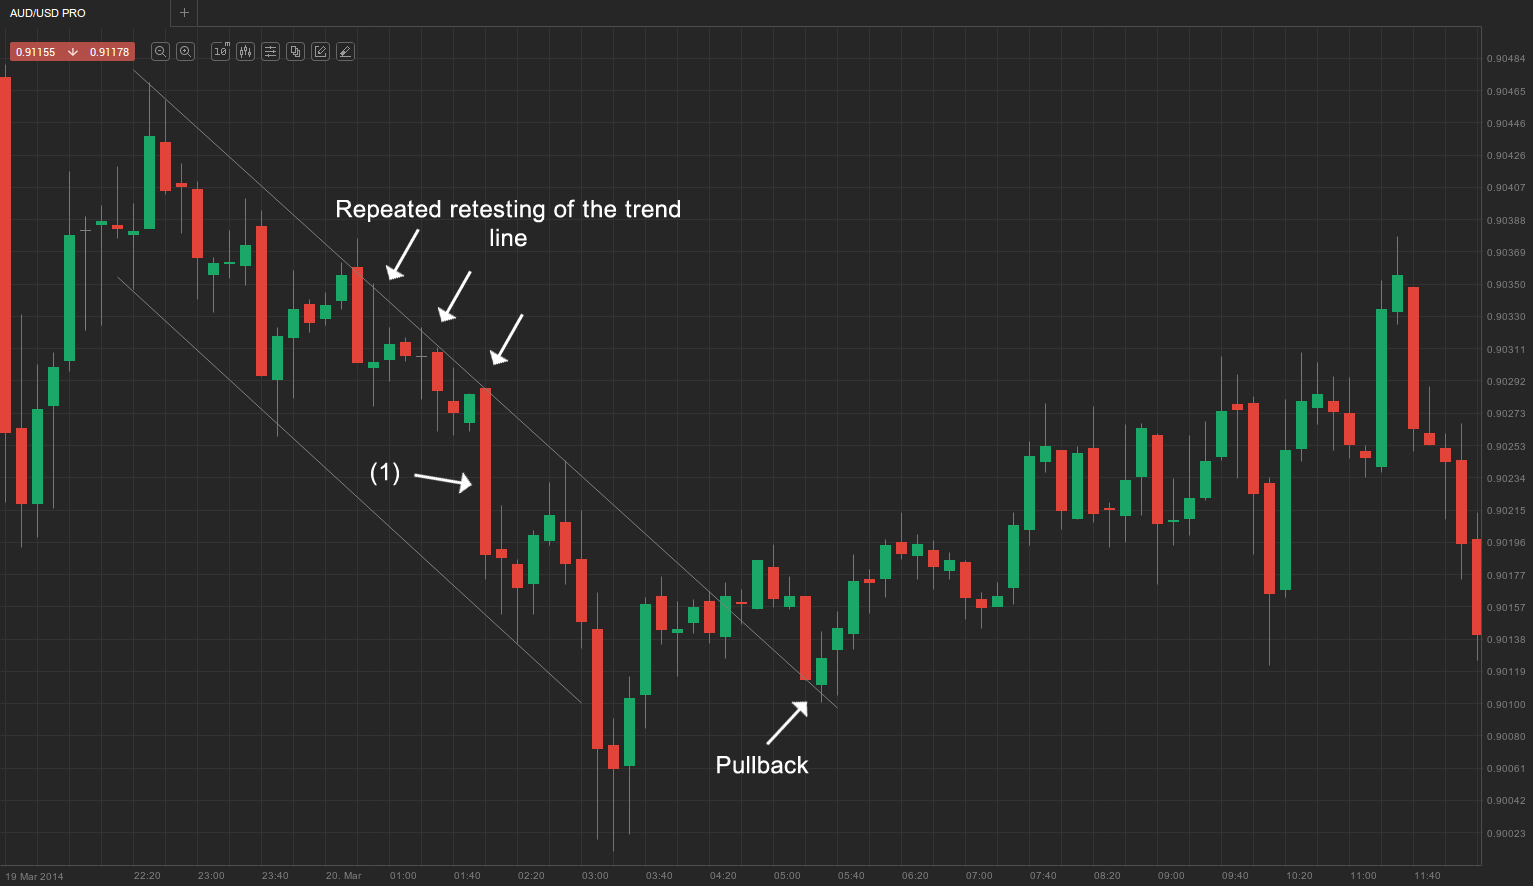 Repeated retest of trend line